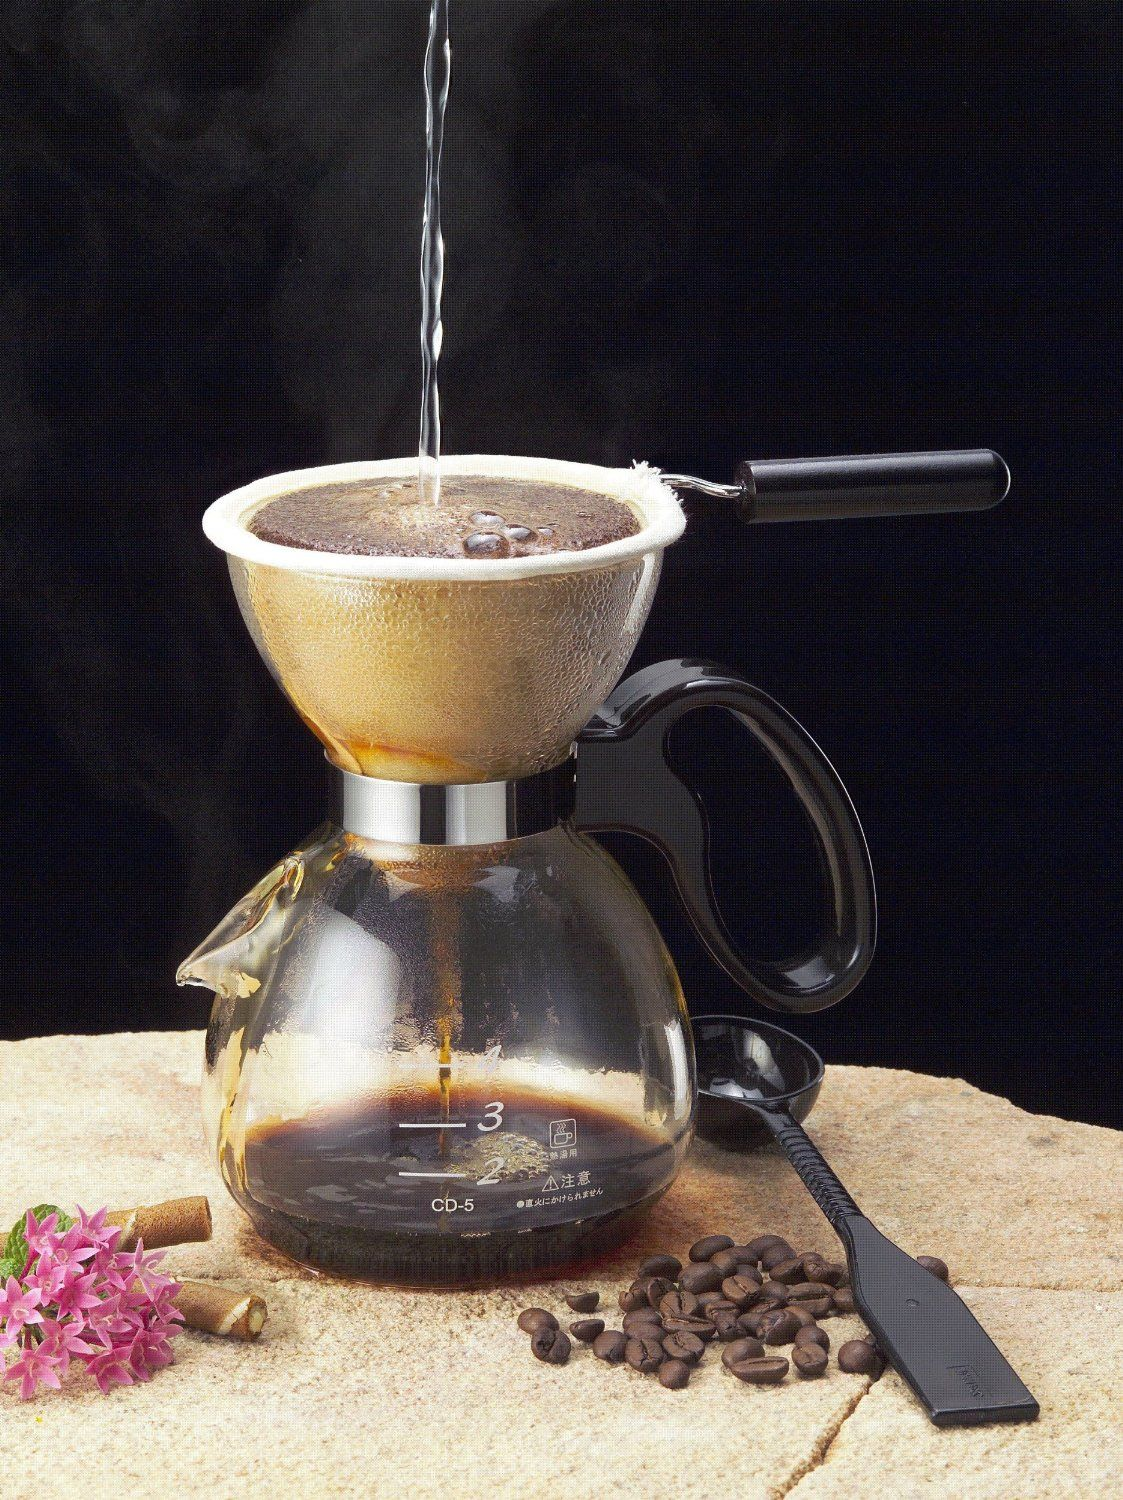 Yama Pour Over Coffee Maker, 20oz. To use with cloth